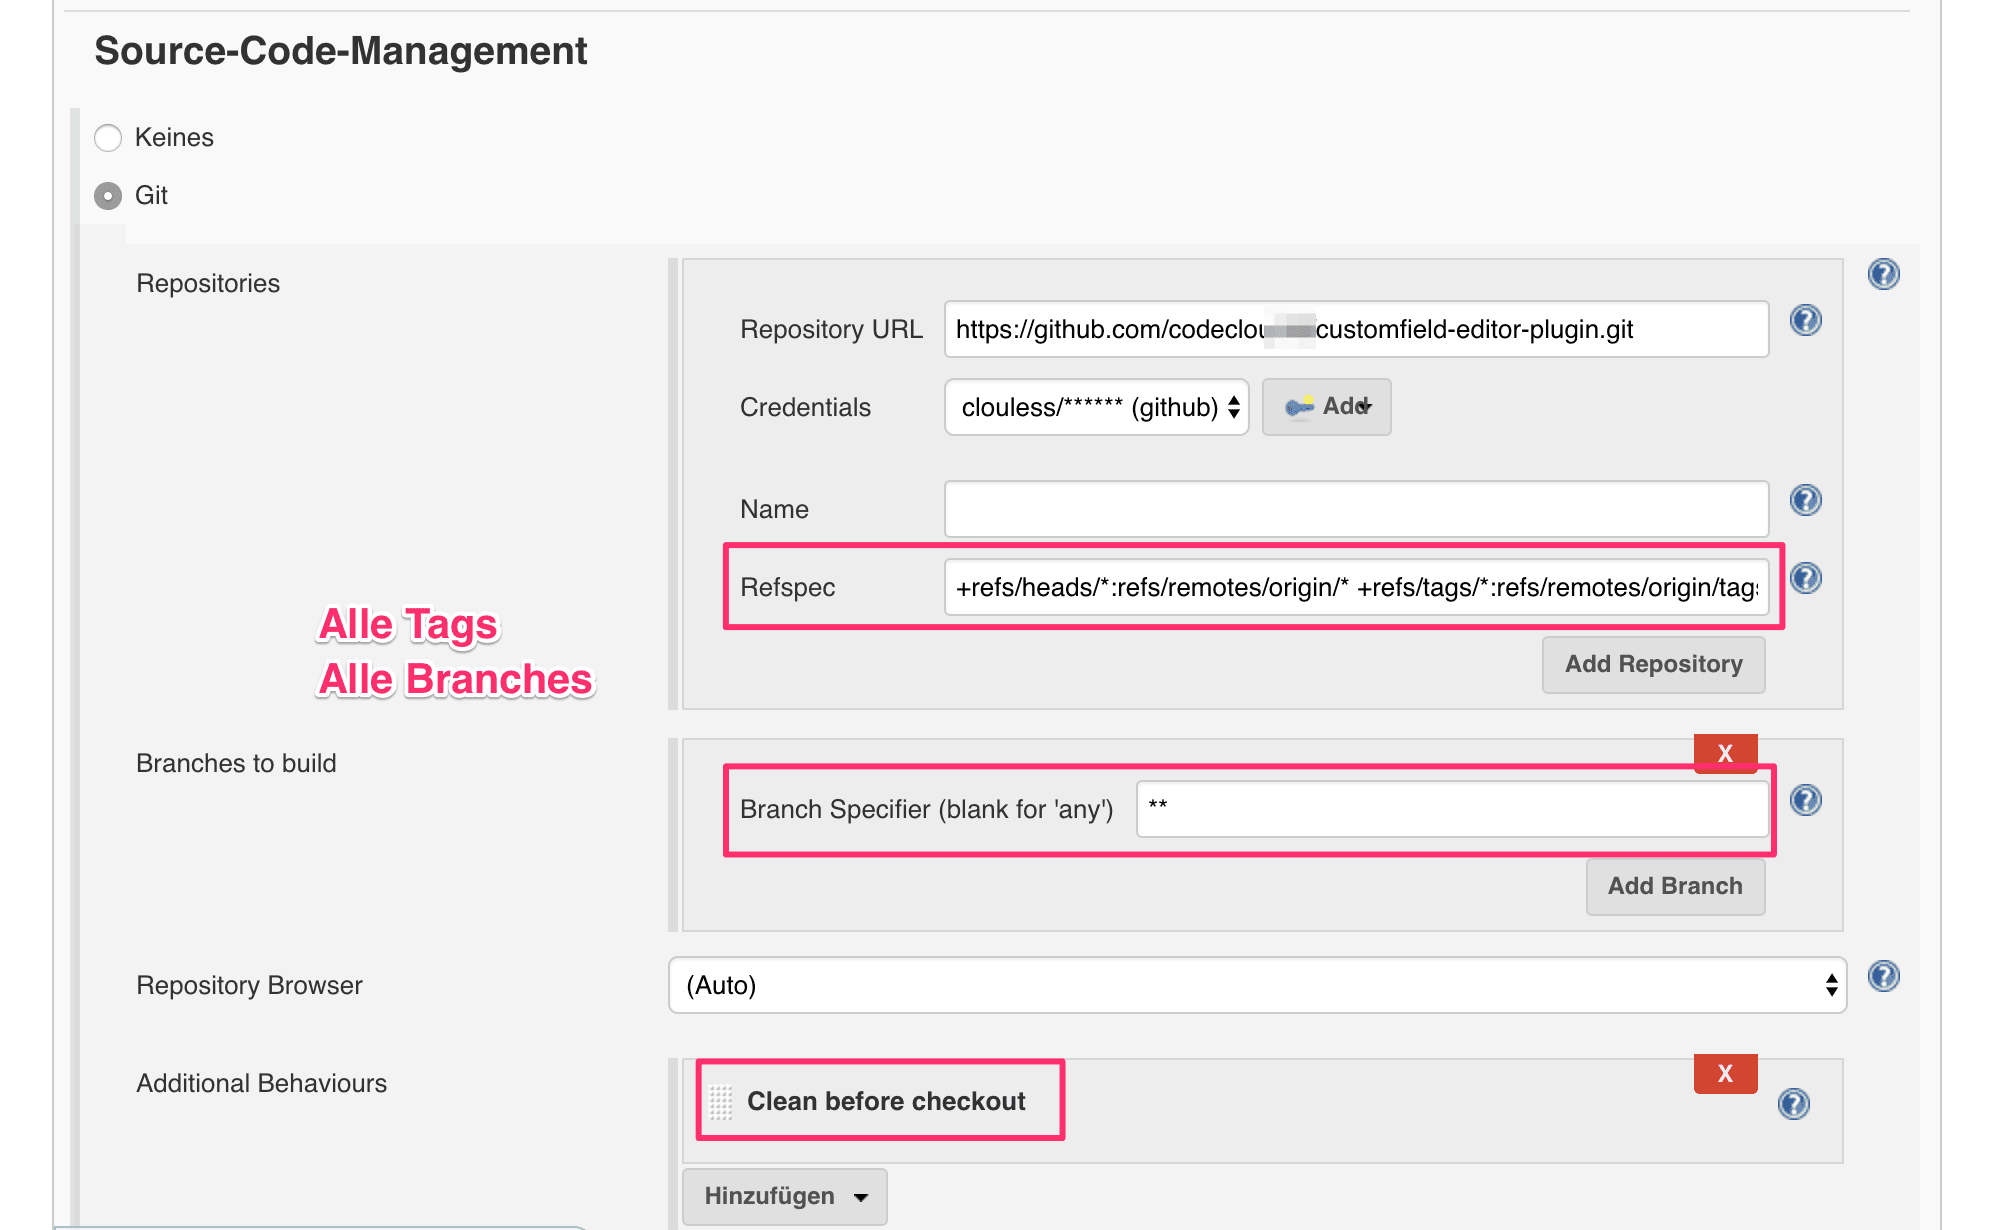 Source Code Management - Alle Branches und alle Tags